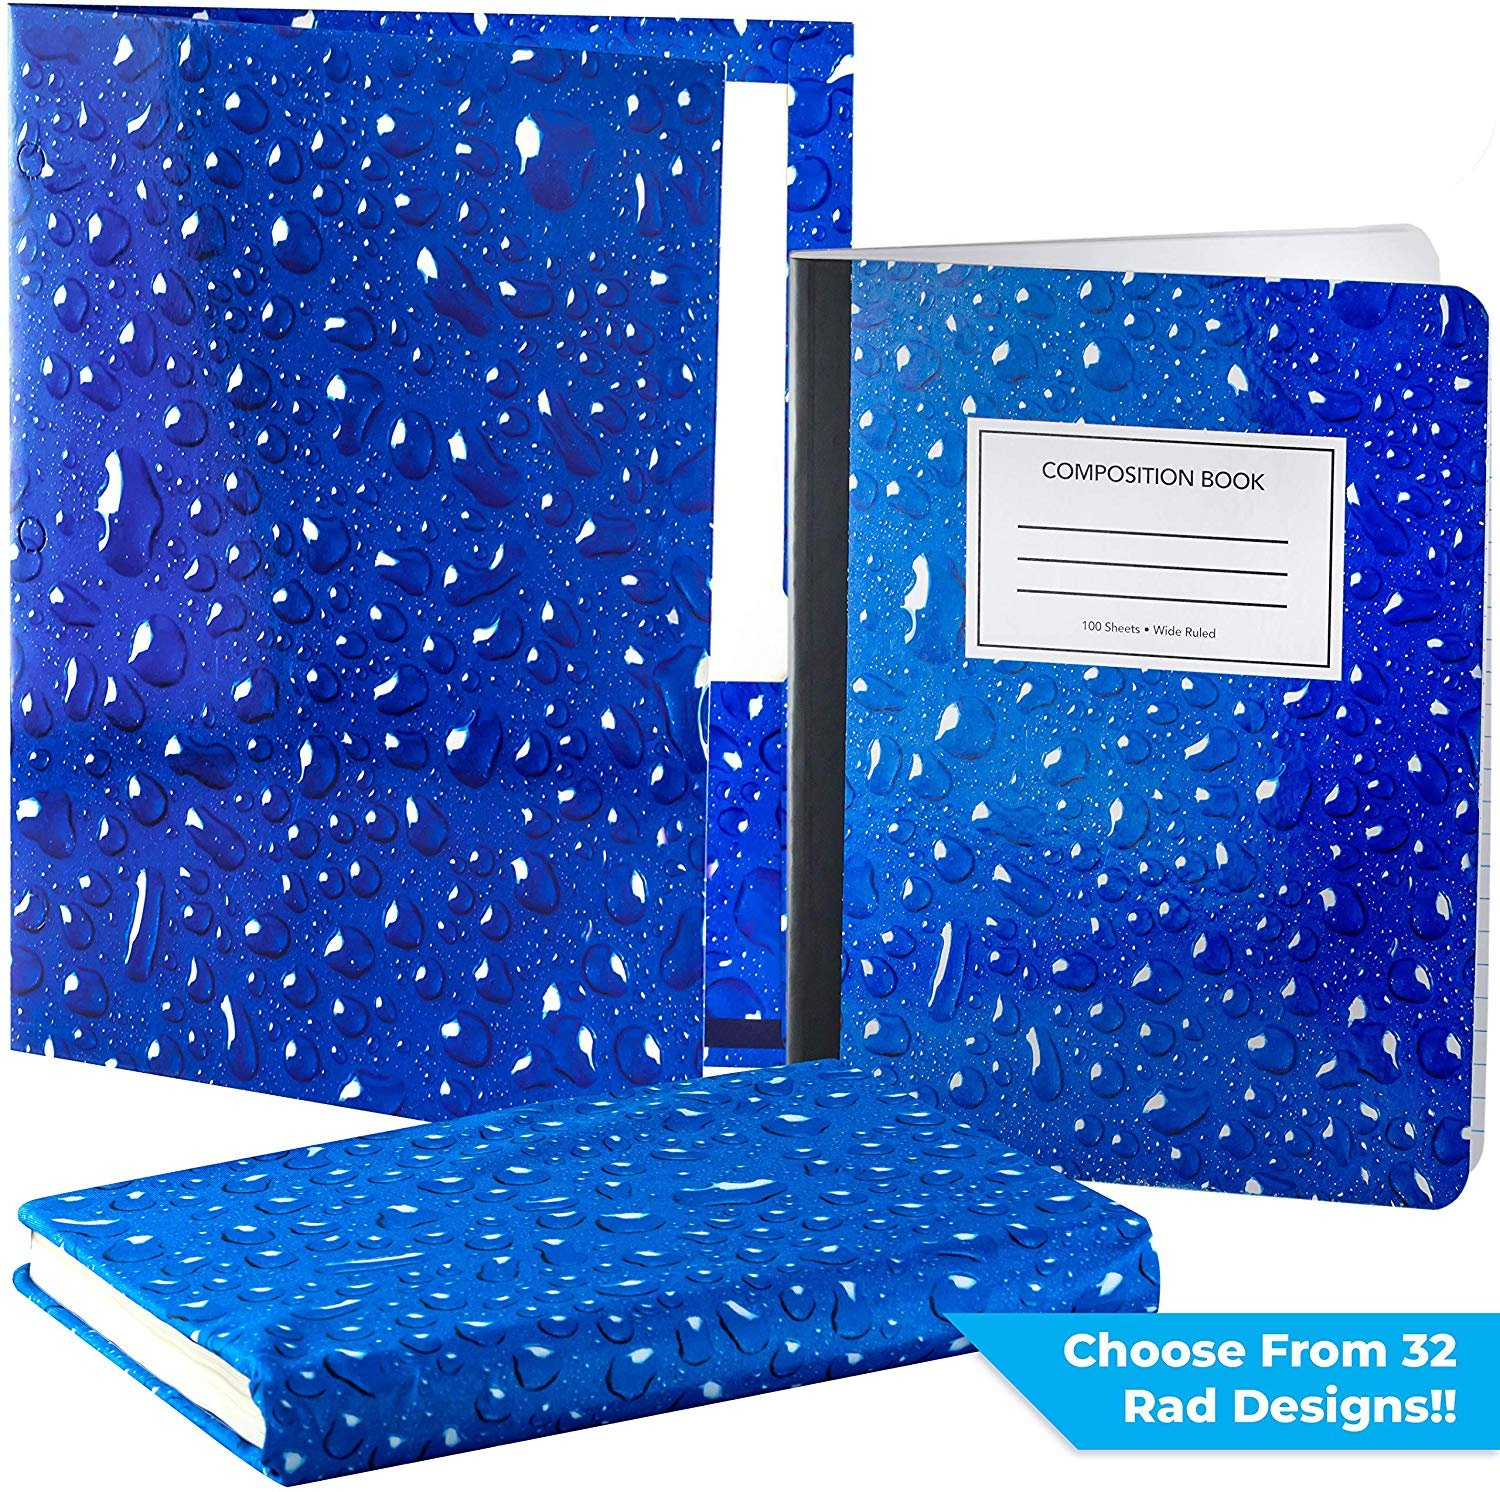 Folder and Composition Notebook Pack Matching Book Cover Our Set Of Stretchable Textbook Protector with a Durable Portfolio and Note Pad Is An Essential Supply to Keep Students Organized In School